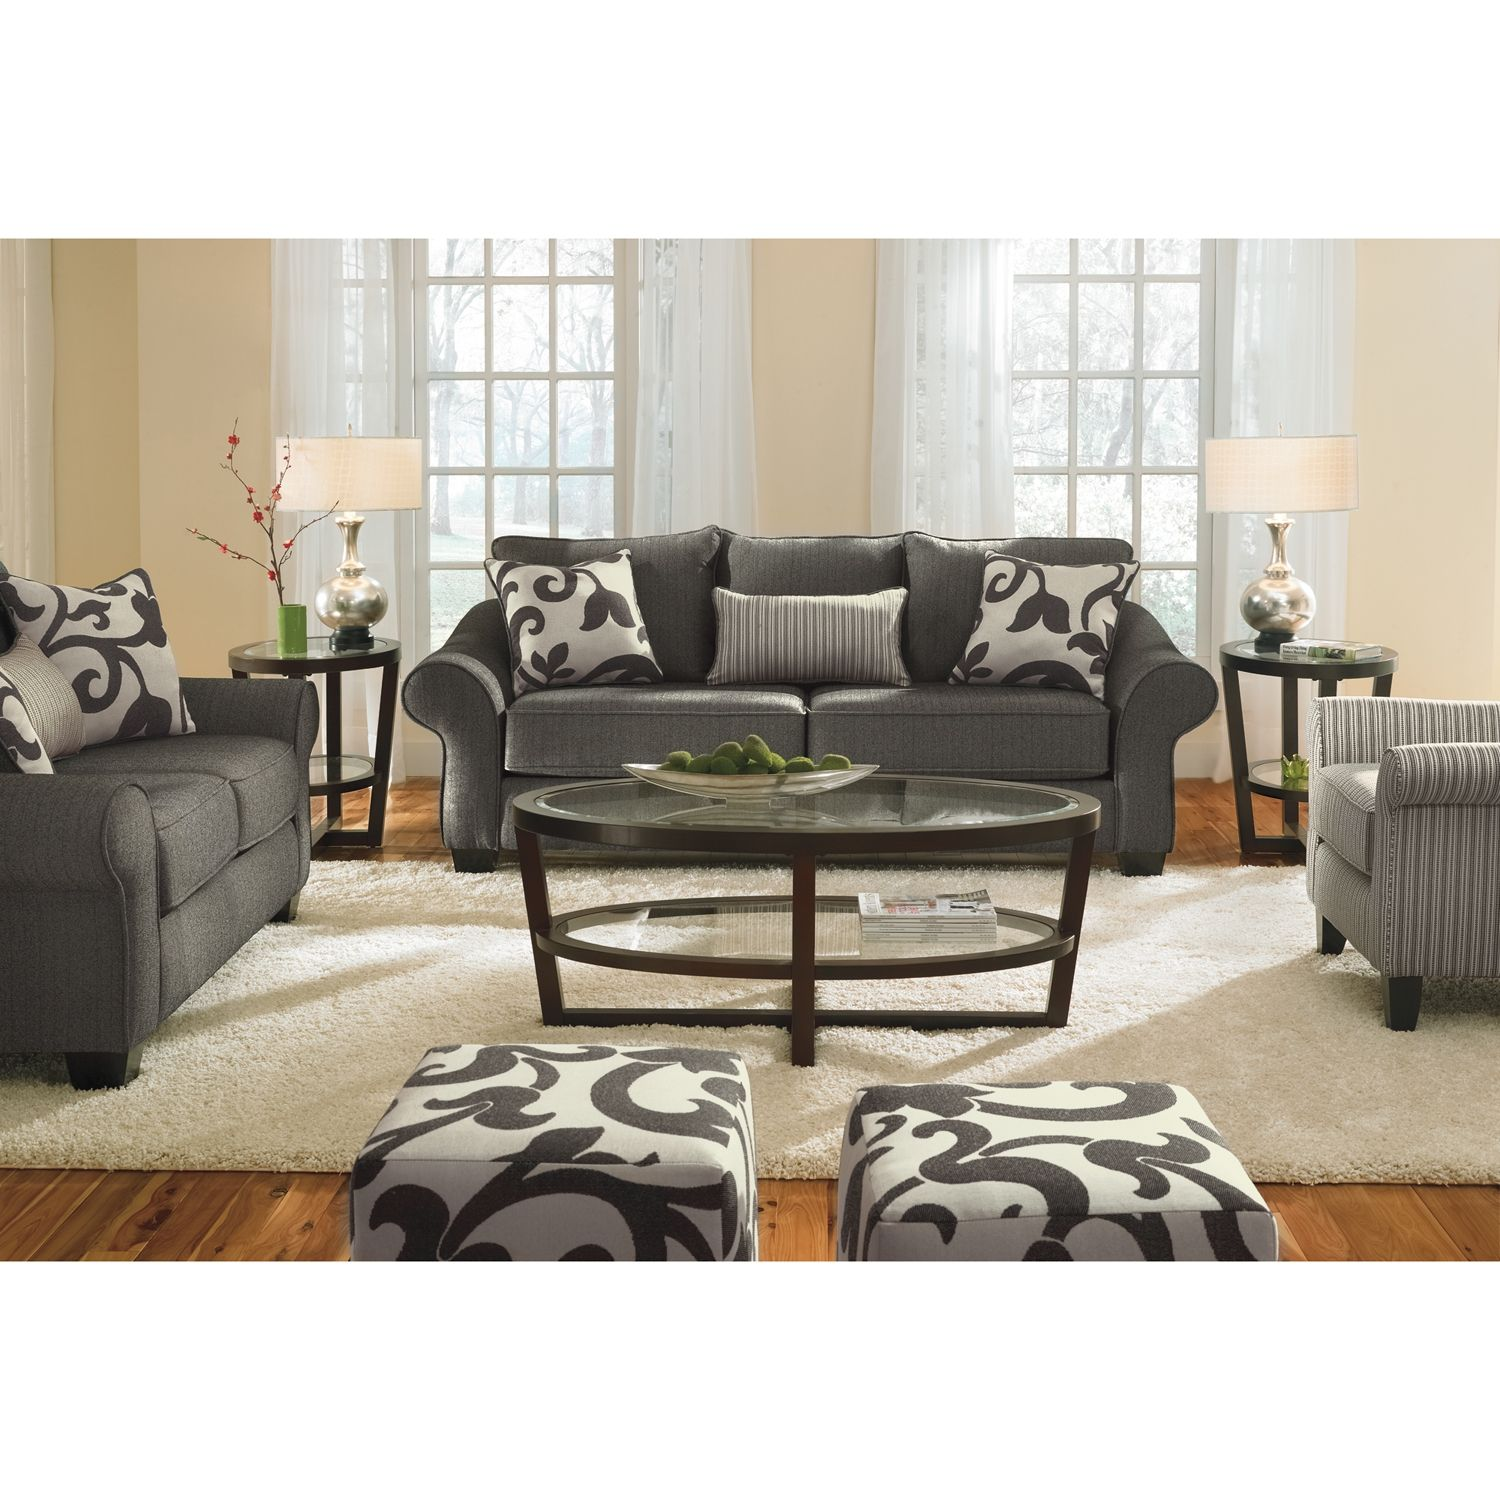 Living Room Sets Value City Furniture $500 colette upholstery 3 seat gray herringbone sofa with accent